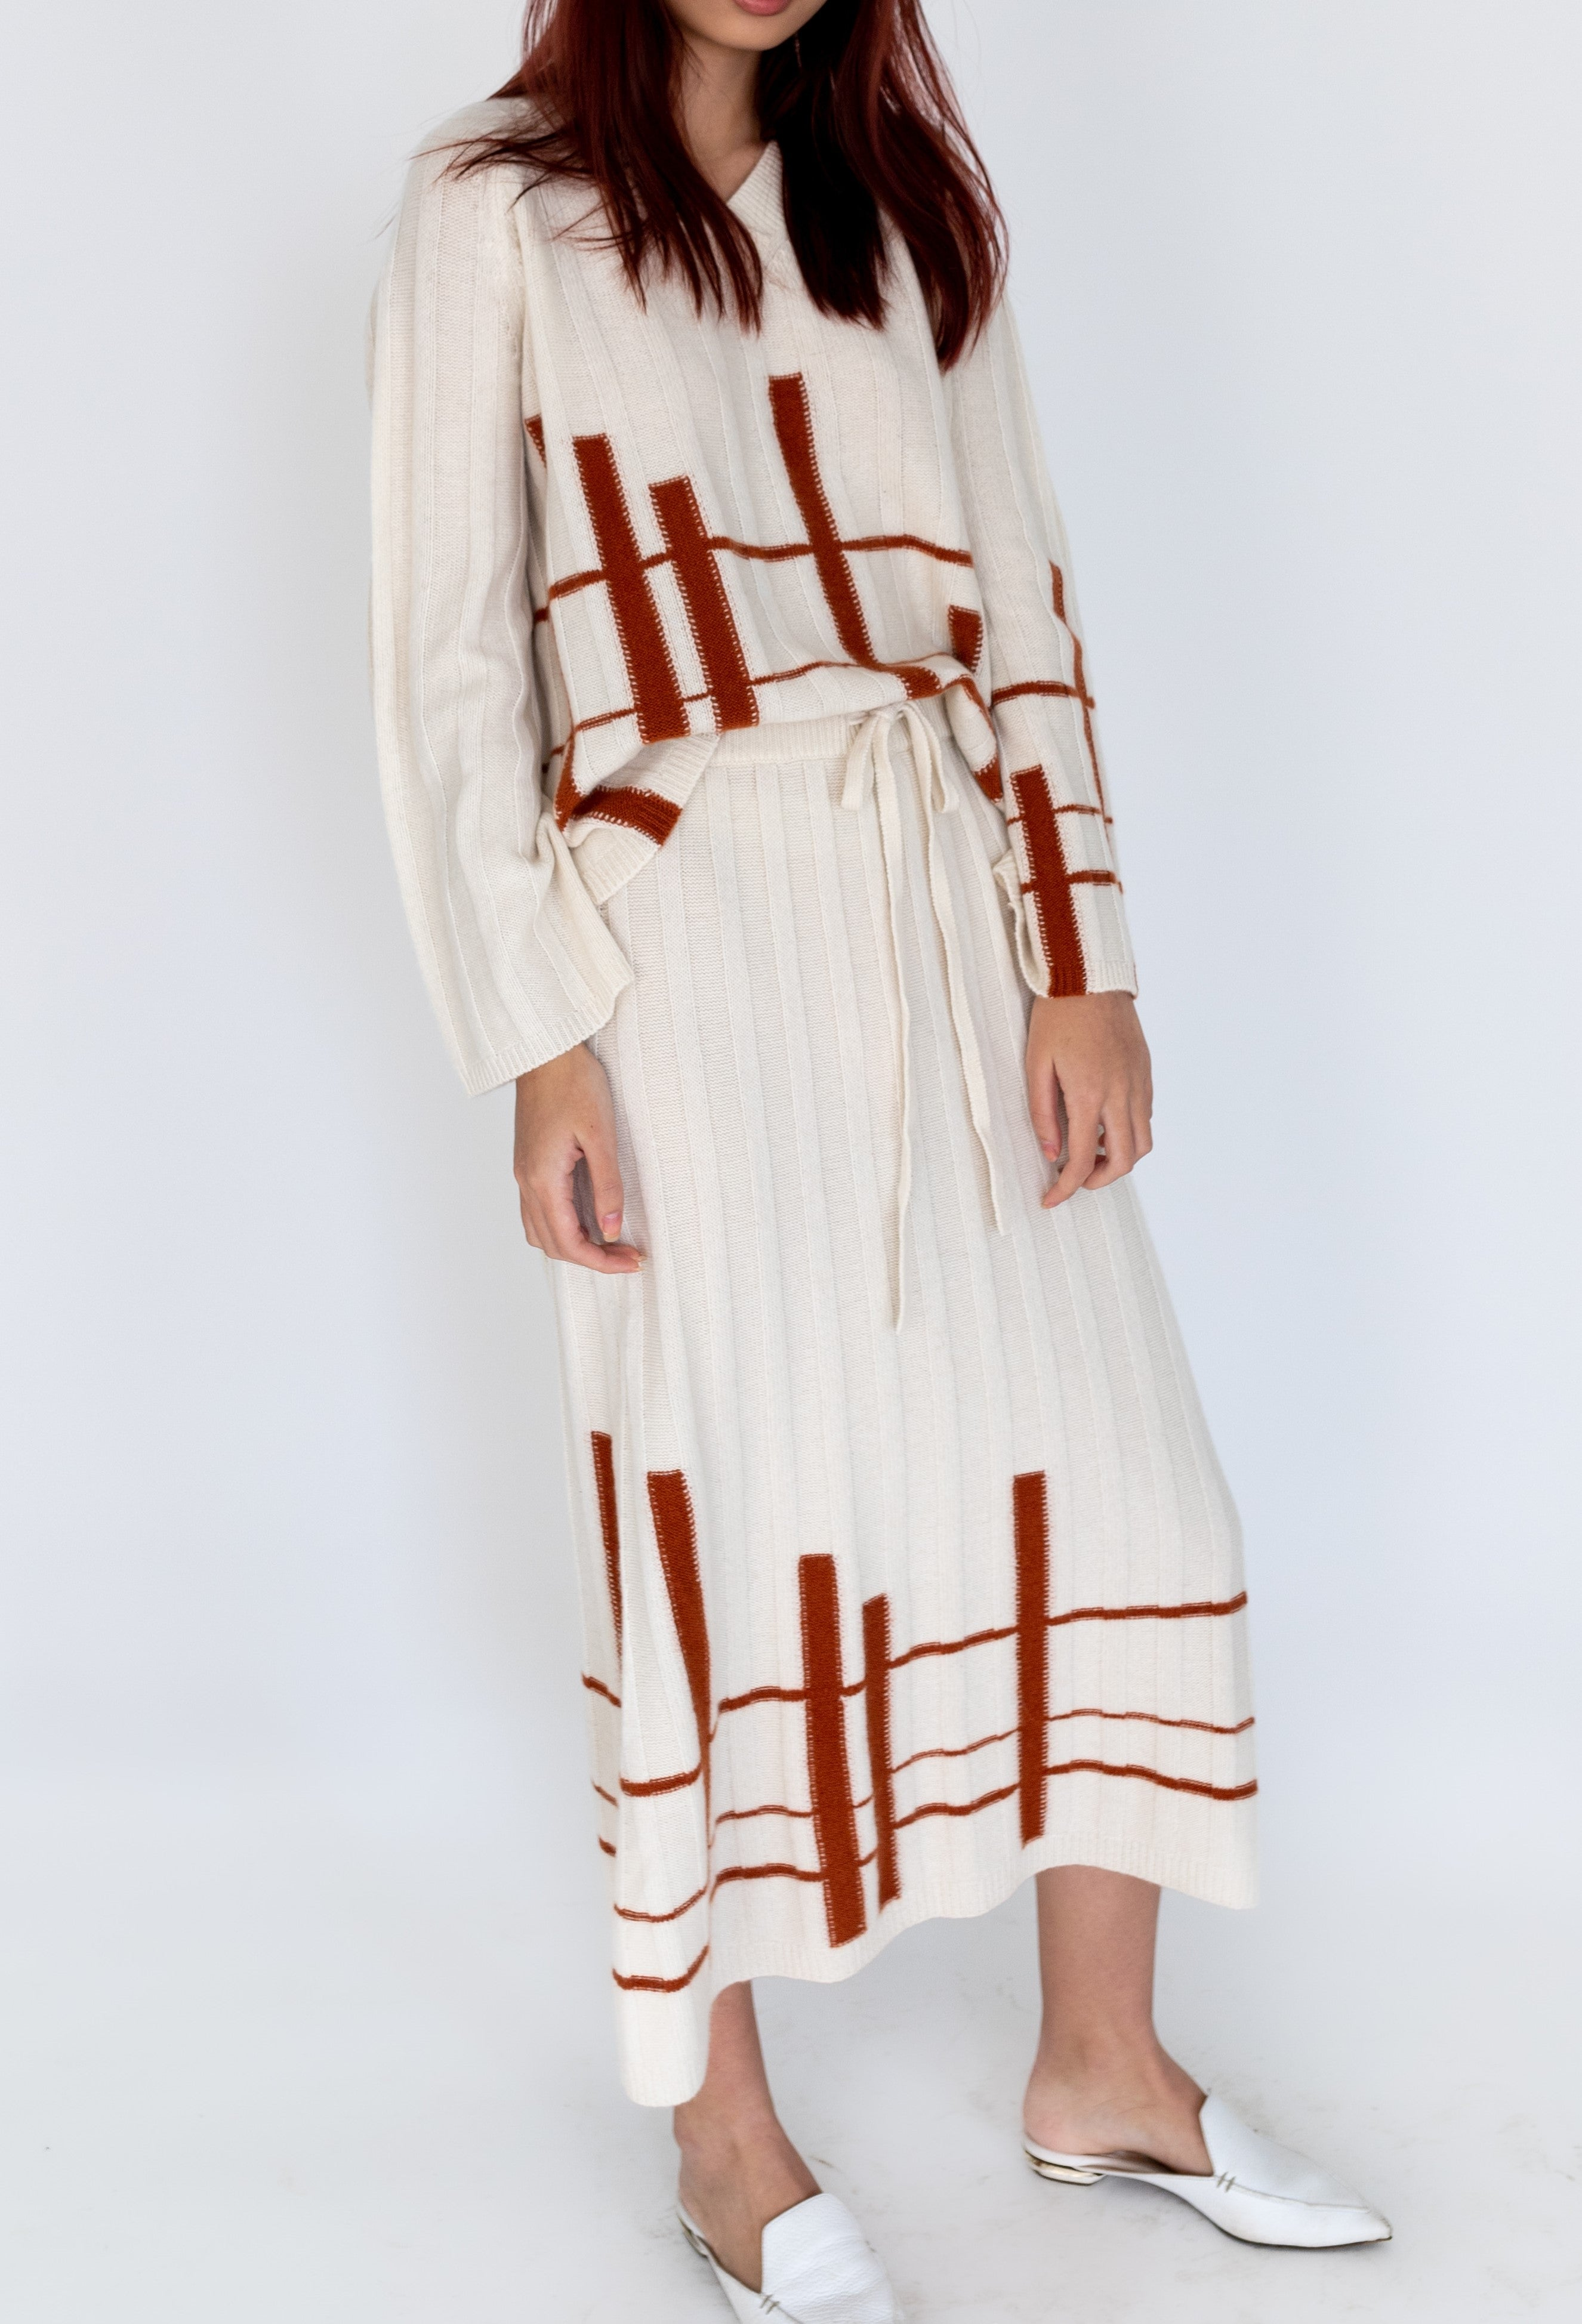 CASHMERE DRESS WITH STRIPES PATTERN